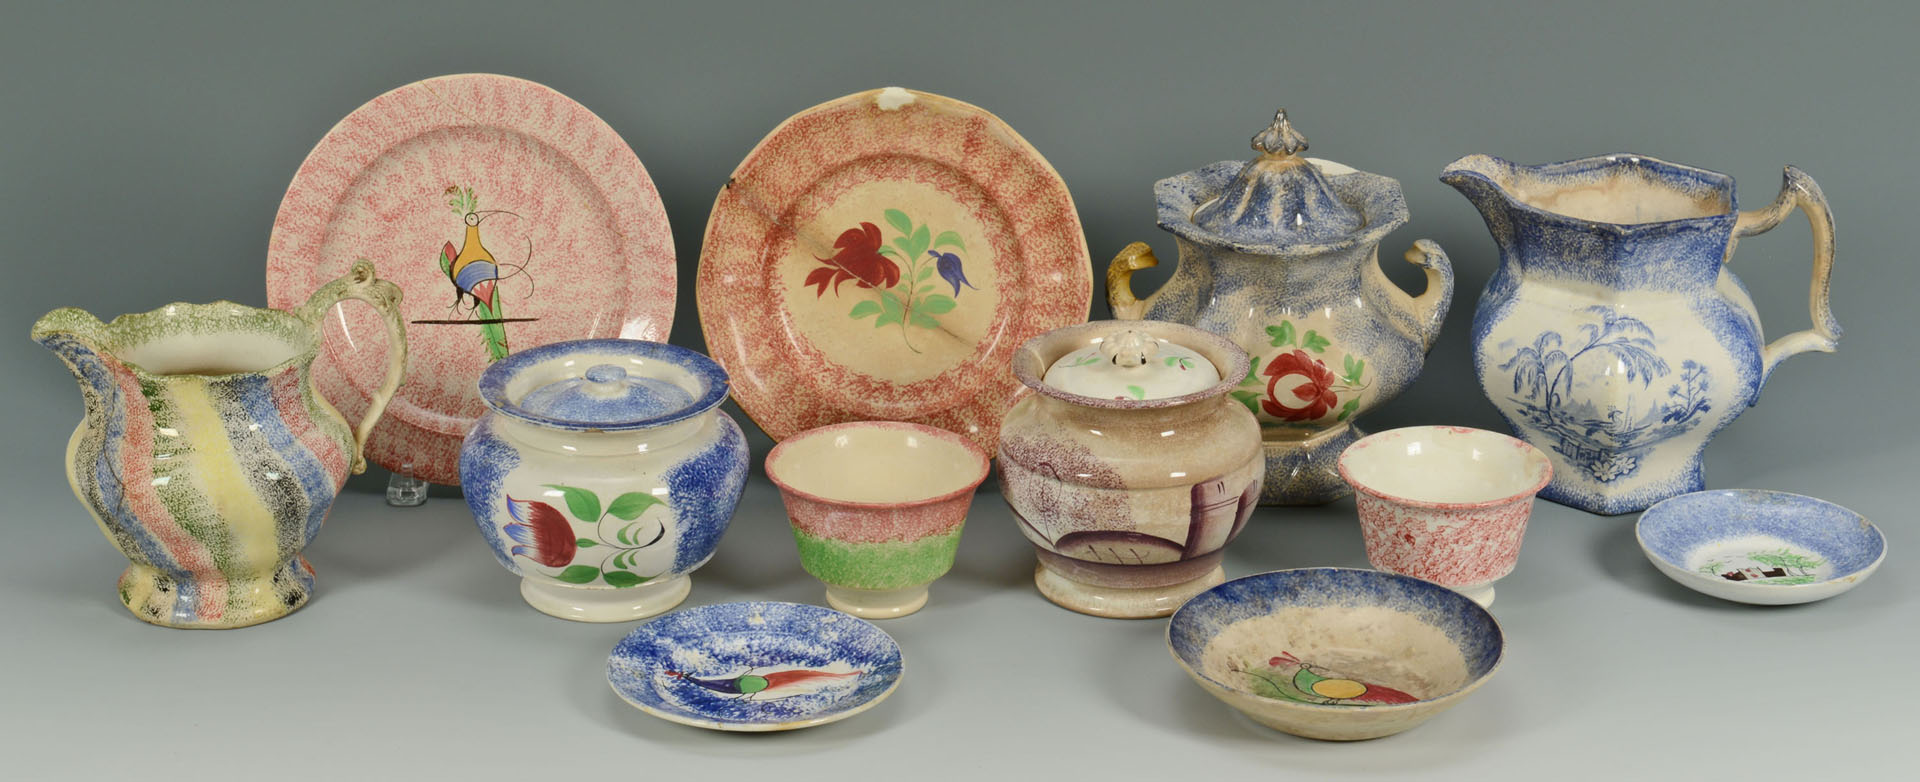 Large Grouping of Spatterware, 12 items